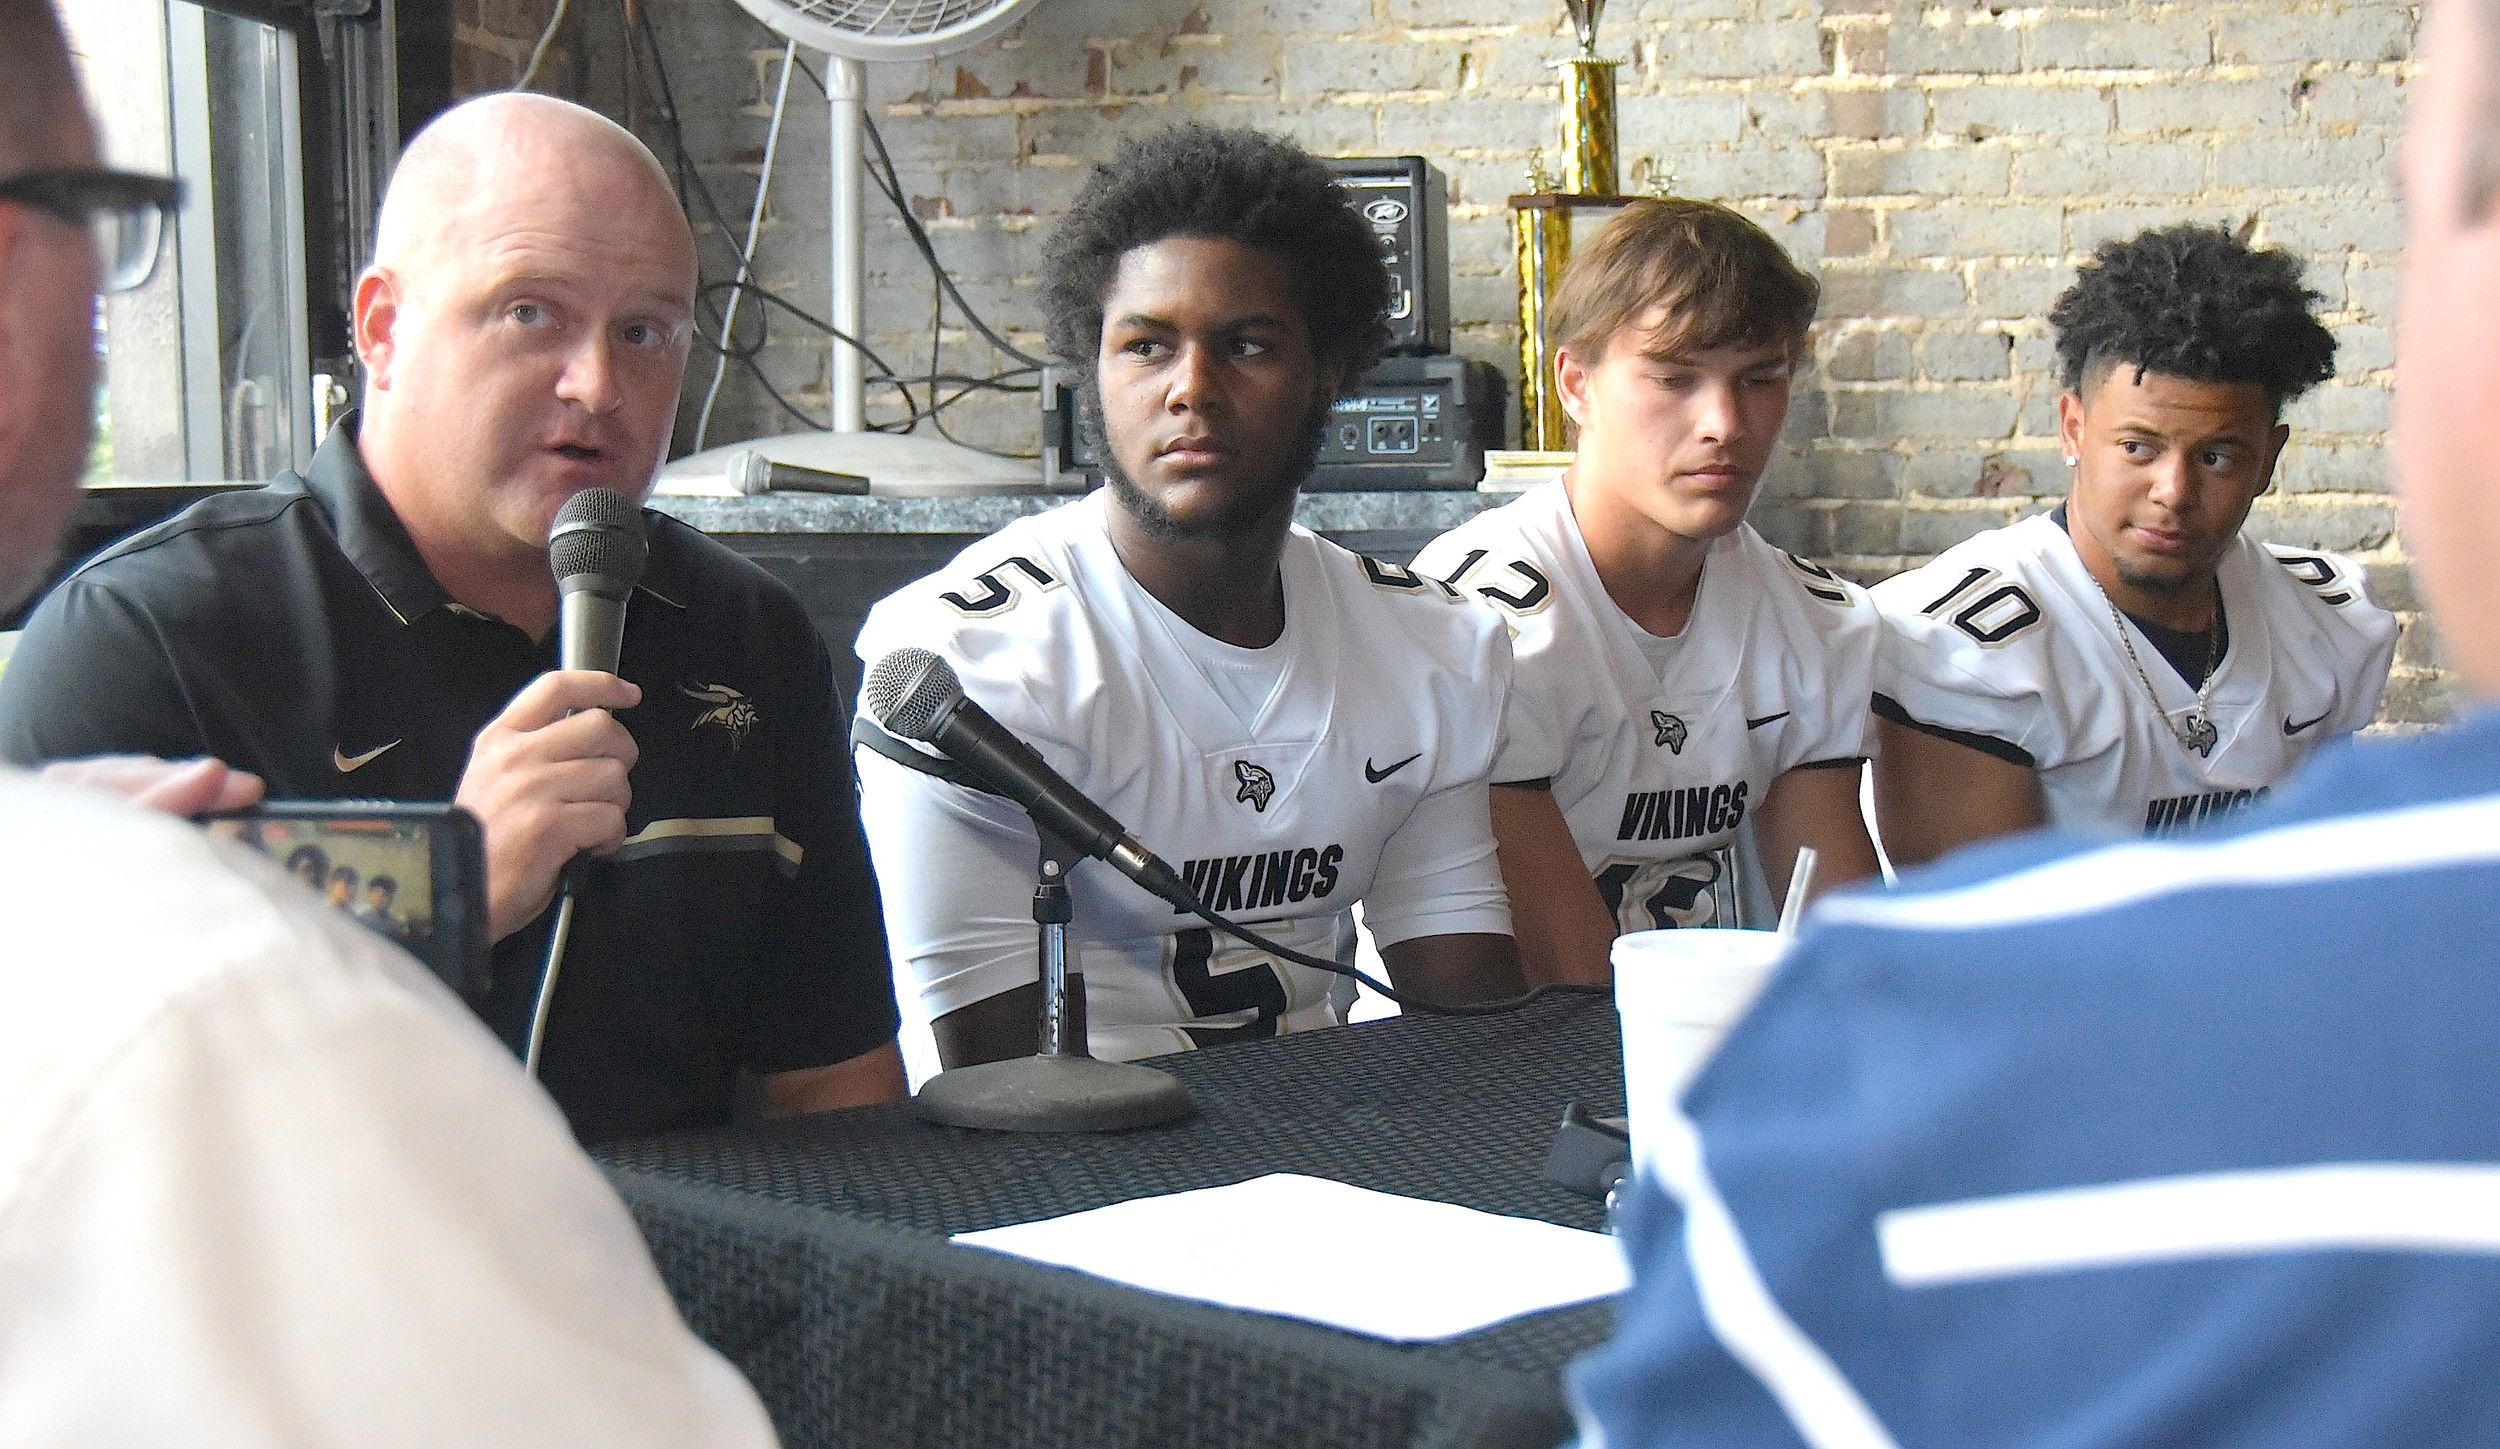 Jasper High School football coach Heath Brunner sits with players, from left, Jeremiah Hammond, Ethan Walker and Eli DeJesus during the first Walker County Football Media Day held at Warehouse 319 in Jasper on Monday. Coaches and players from Carbon Hill, Cordova, Curry, Dora, Oakman, Sumiton Christian and Jasper took part in the event.